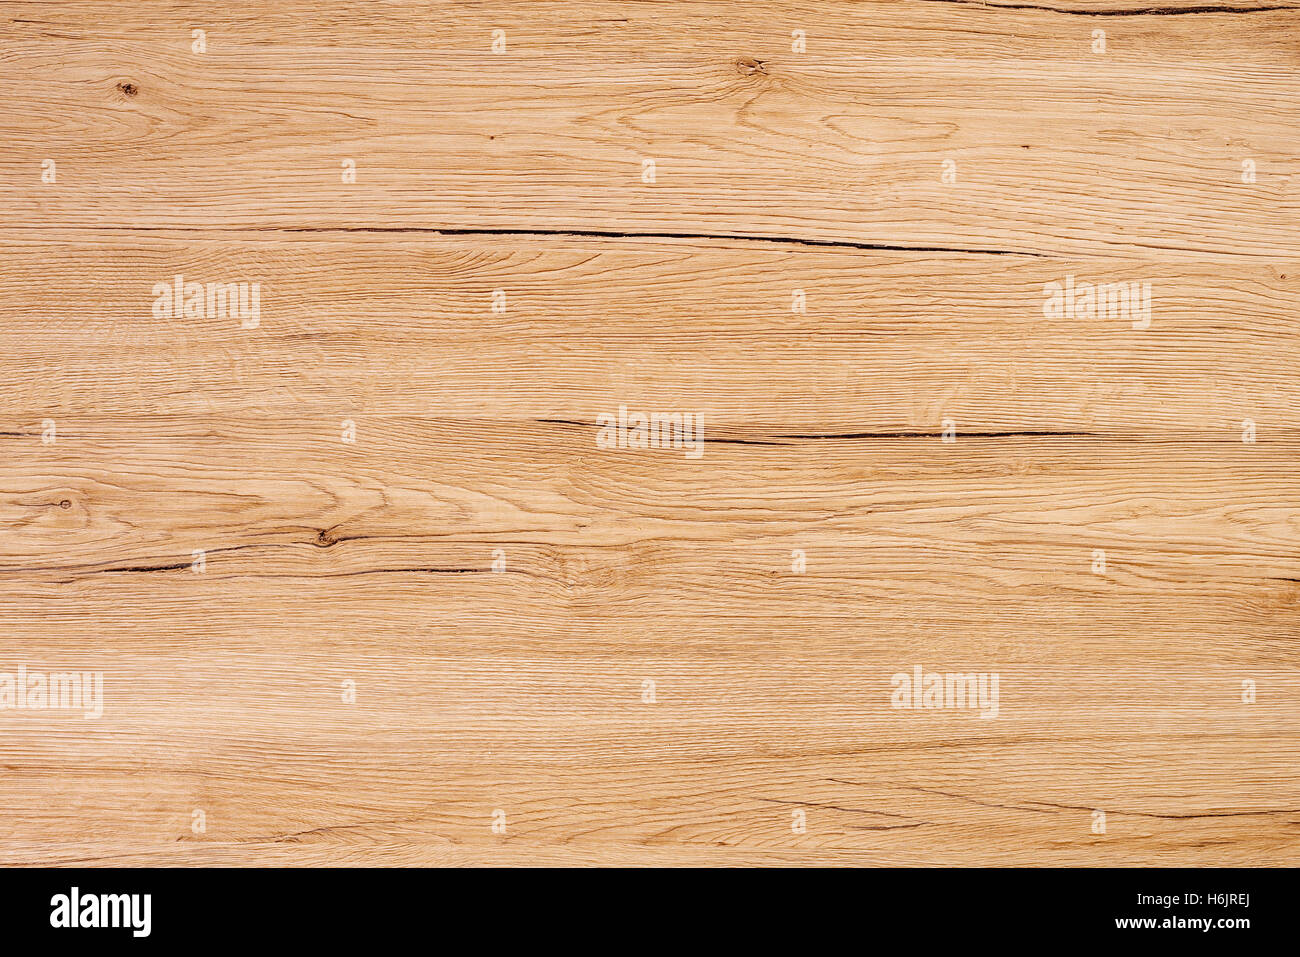 Rustic wooden surface, table top view texture as background - Stock Image